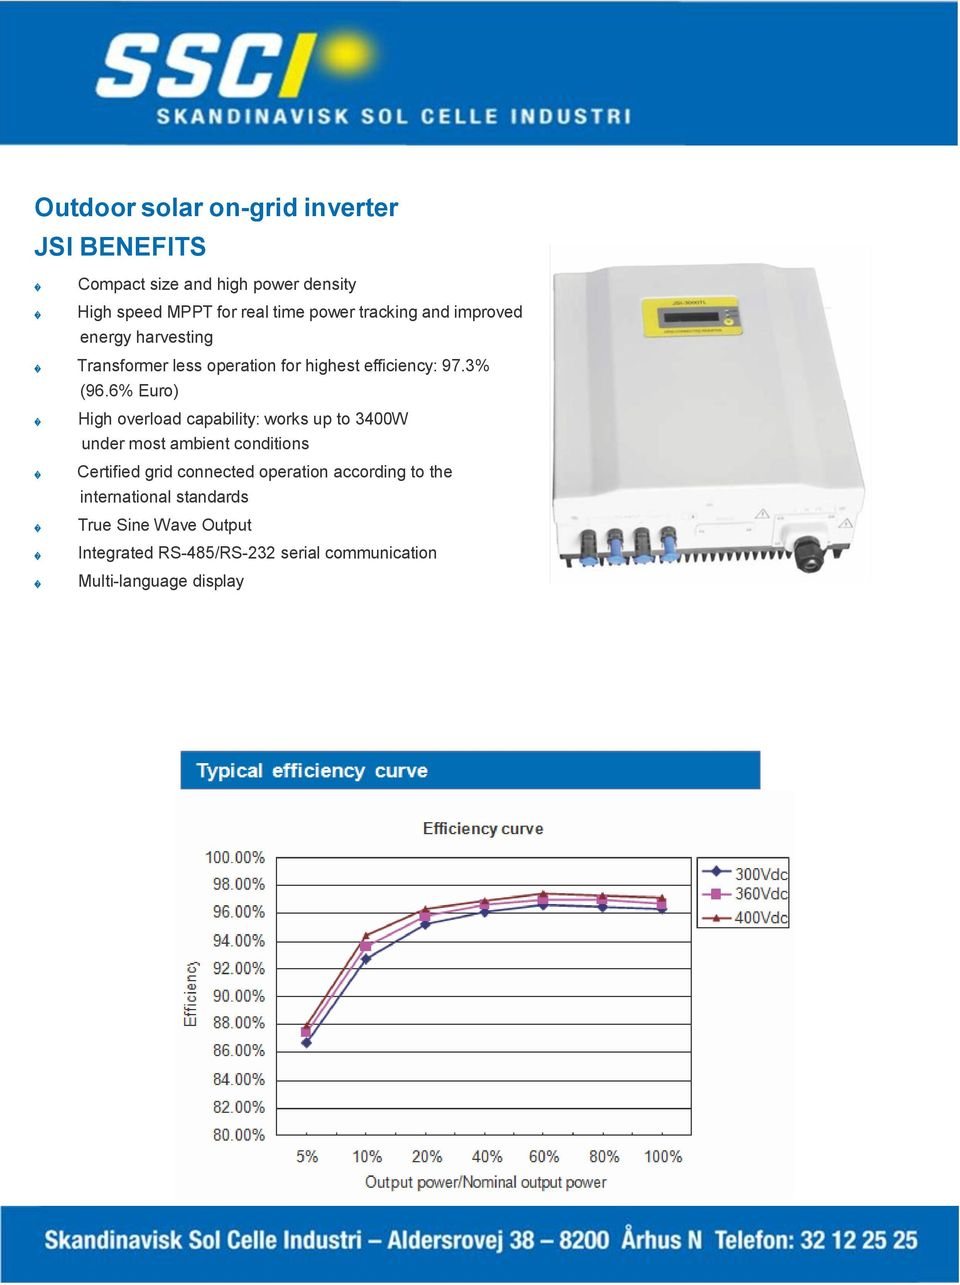 6% Euro) High overload capability: works up to 3400W under most ambient conditions Certified grid connected